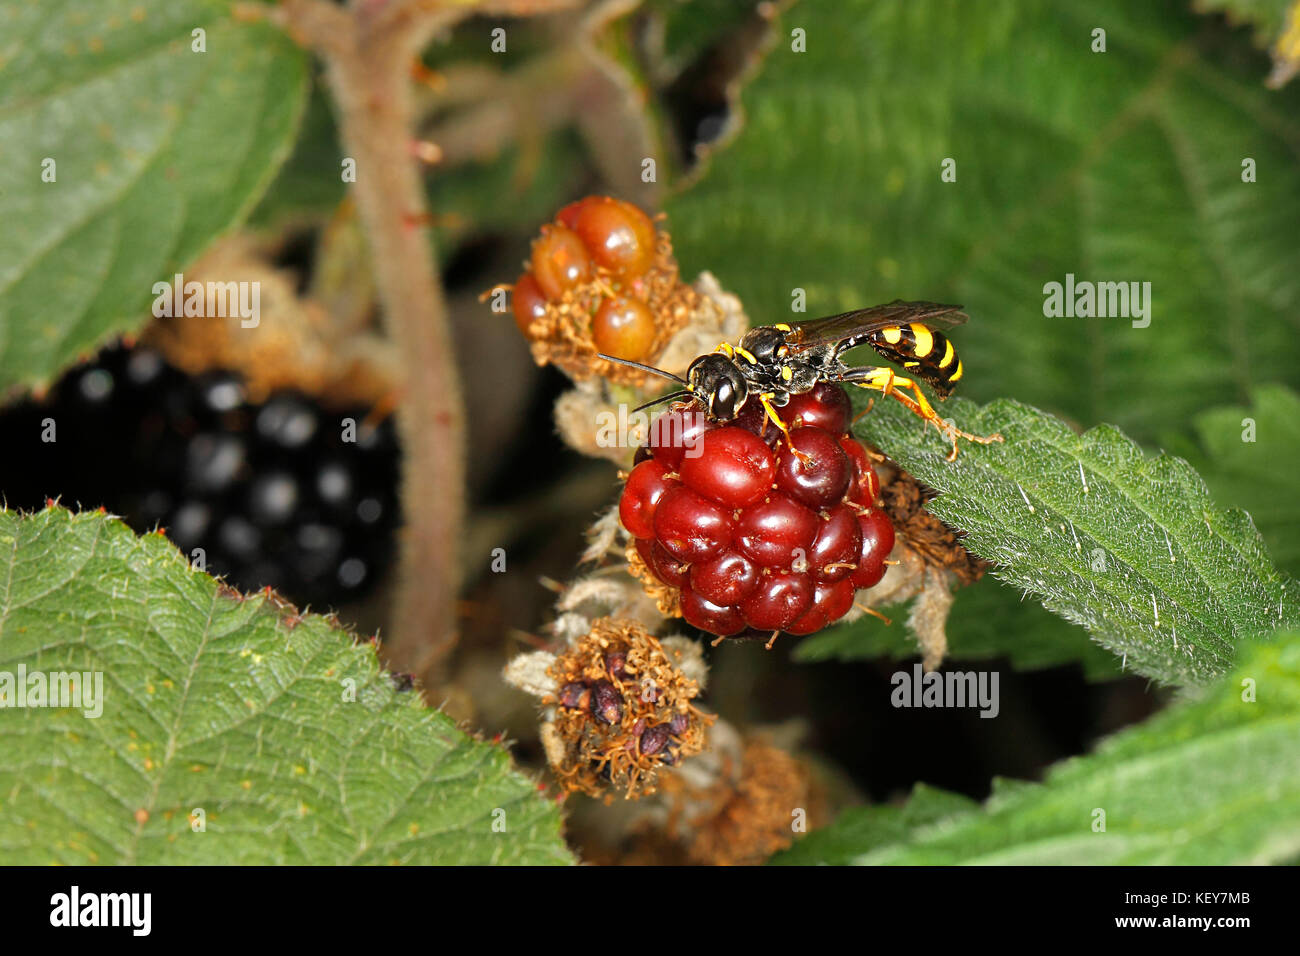 Field Digger Wasp (Mellinus arvensis) resting on Bramble (Rubus fruticosus) berry in hedge at edge of field Cheshire - Stock Image